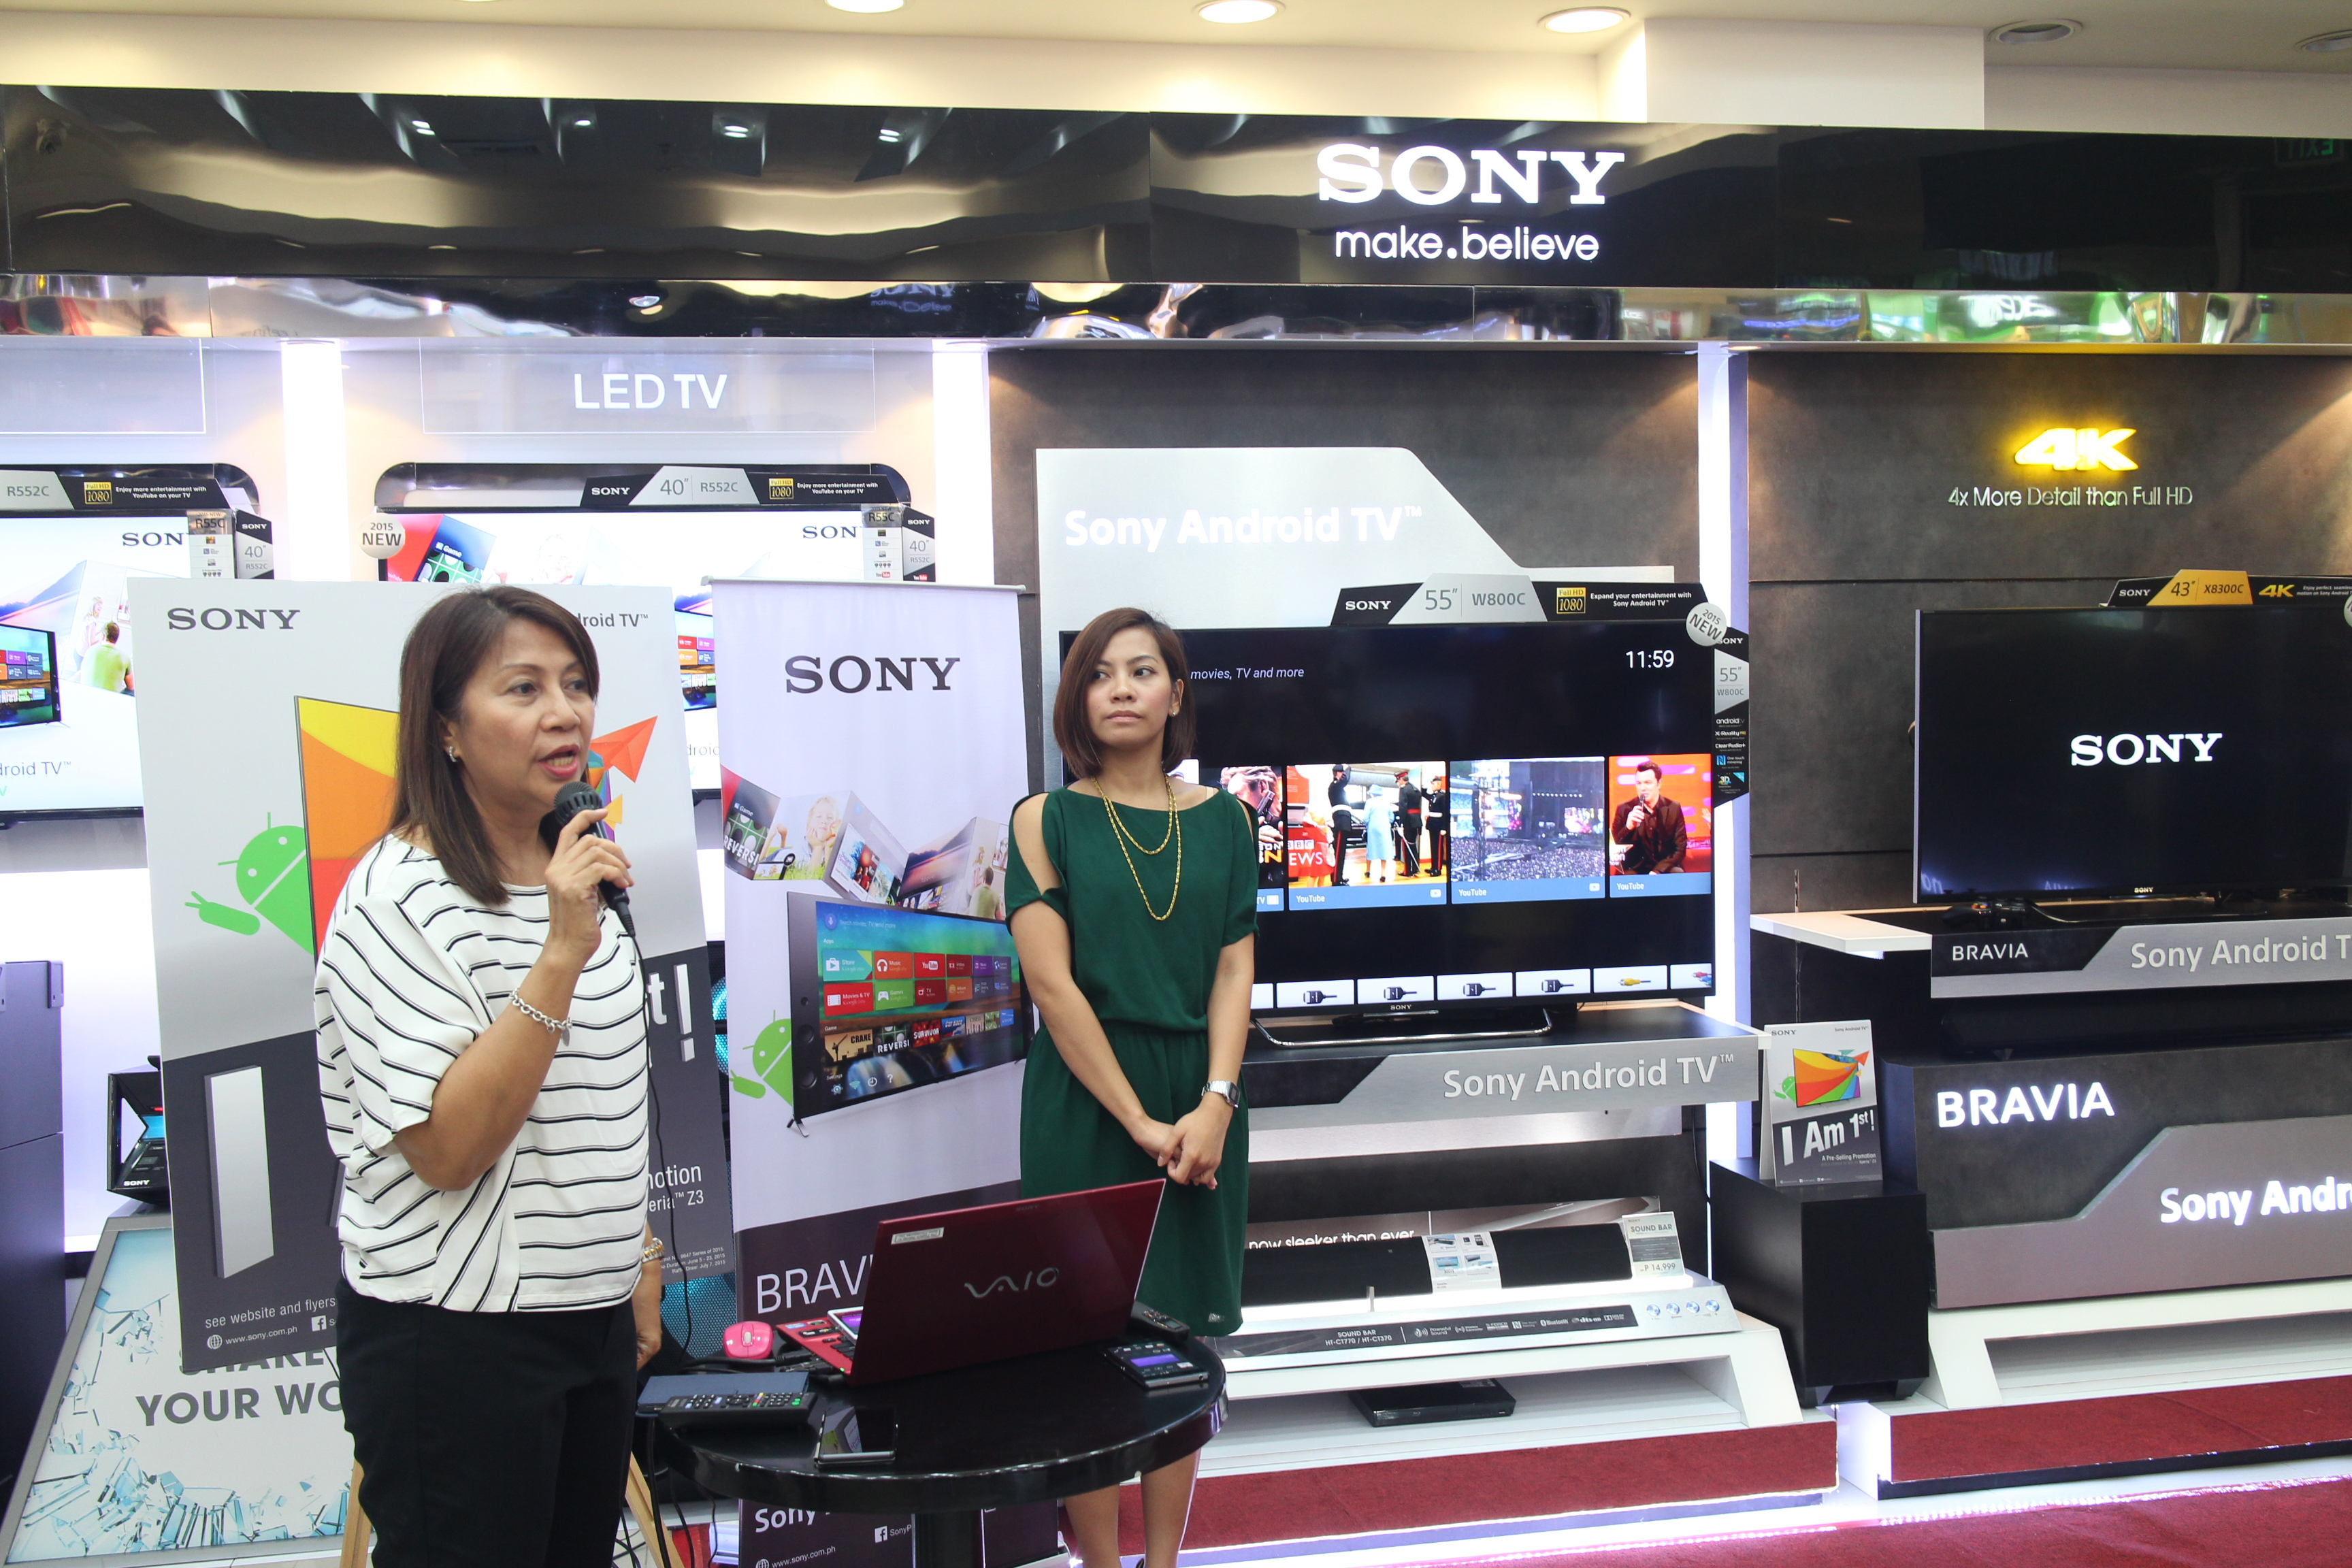 Meet the new Sony Bravia TVs powered by Android